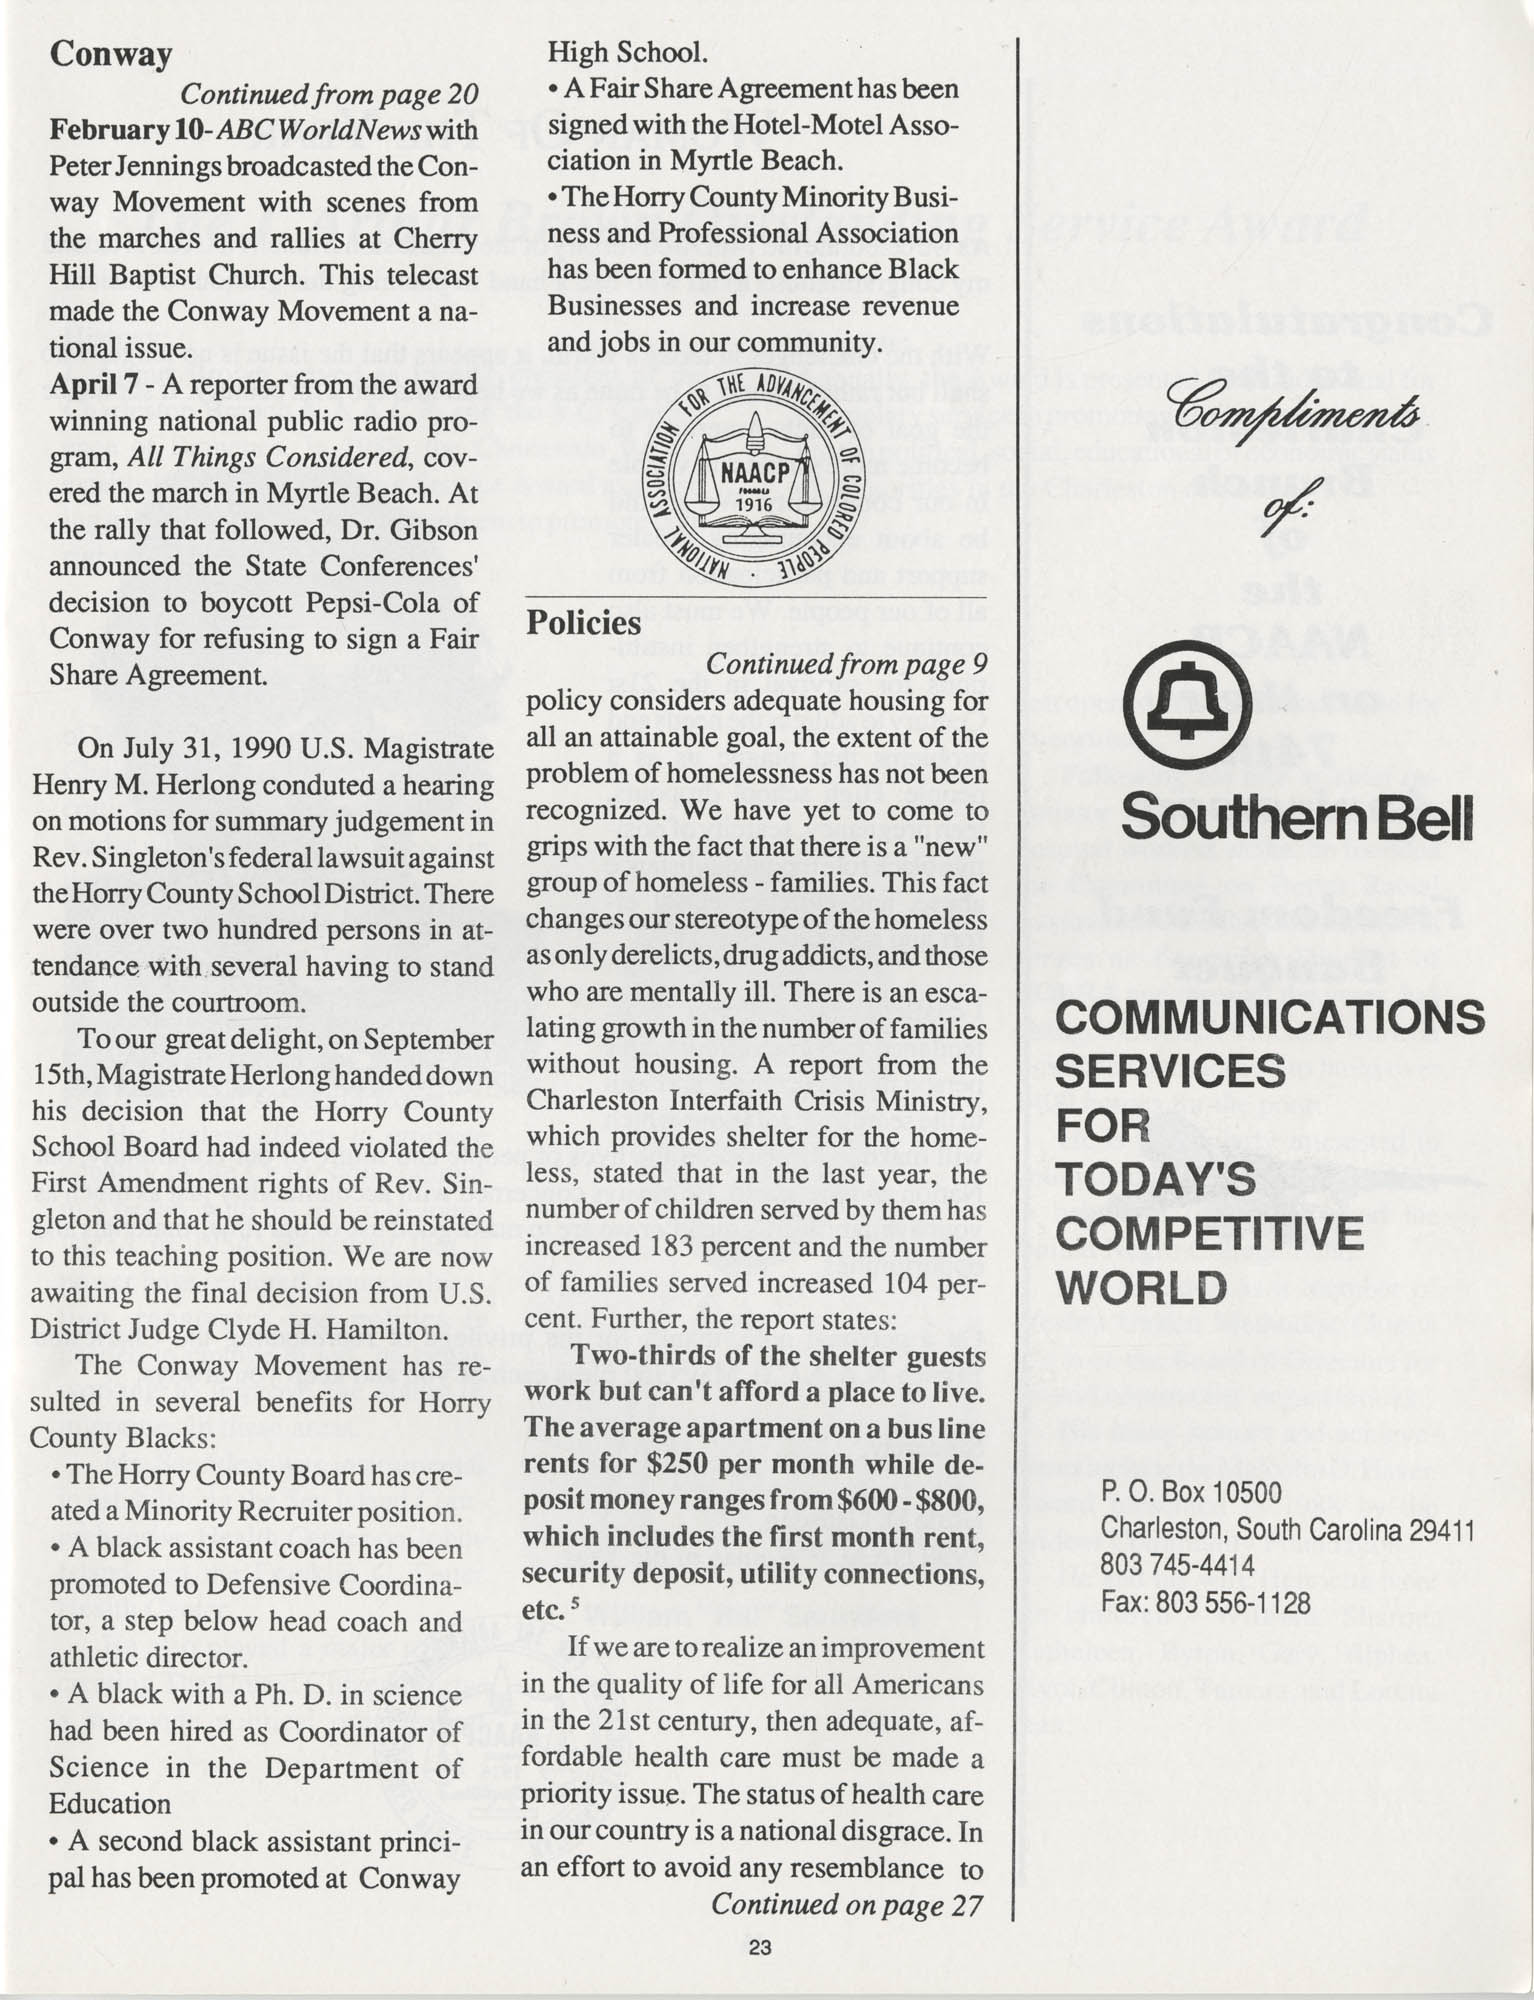 1990 NAACP Freedom Fund Magazine, Charleston Branch of the NAACP, 74th Anniversary, Page 23